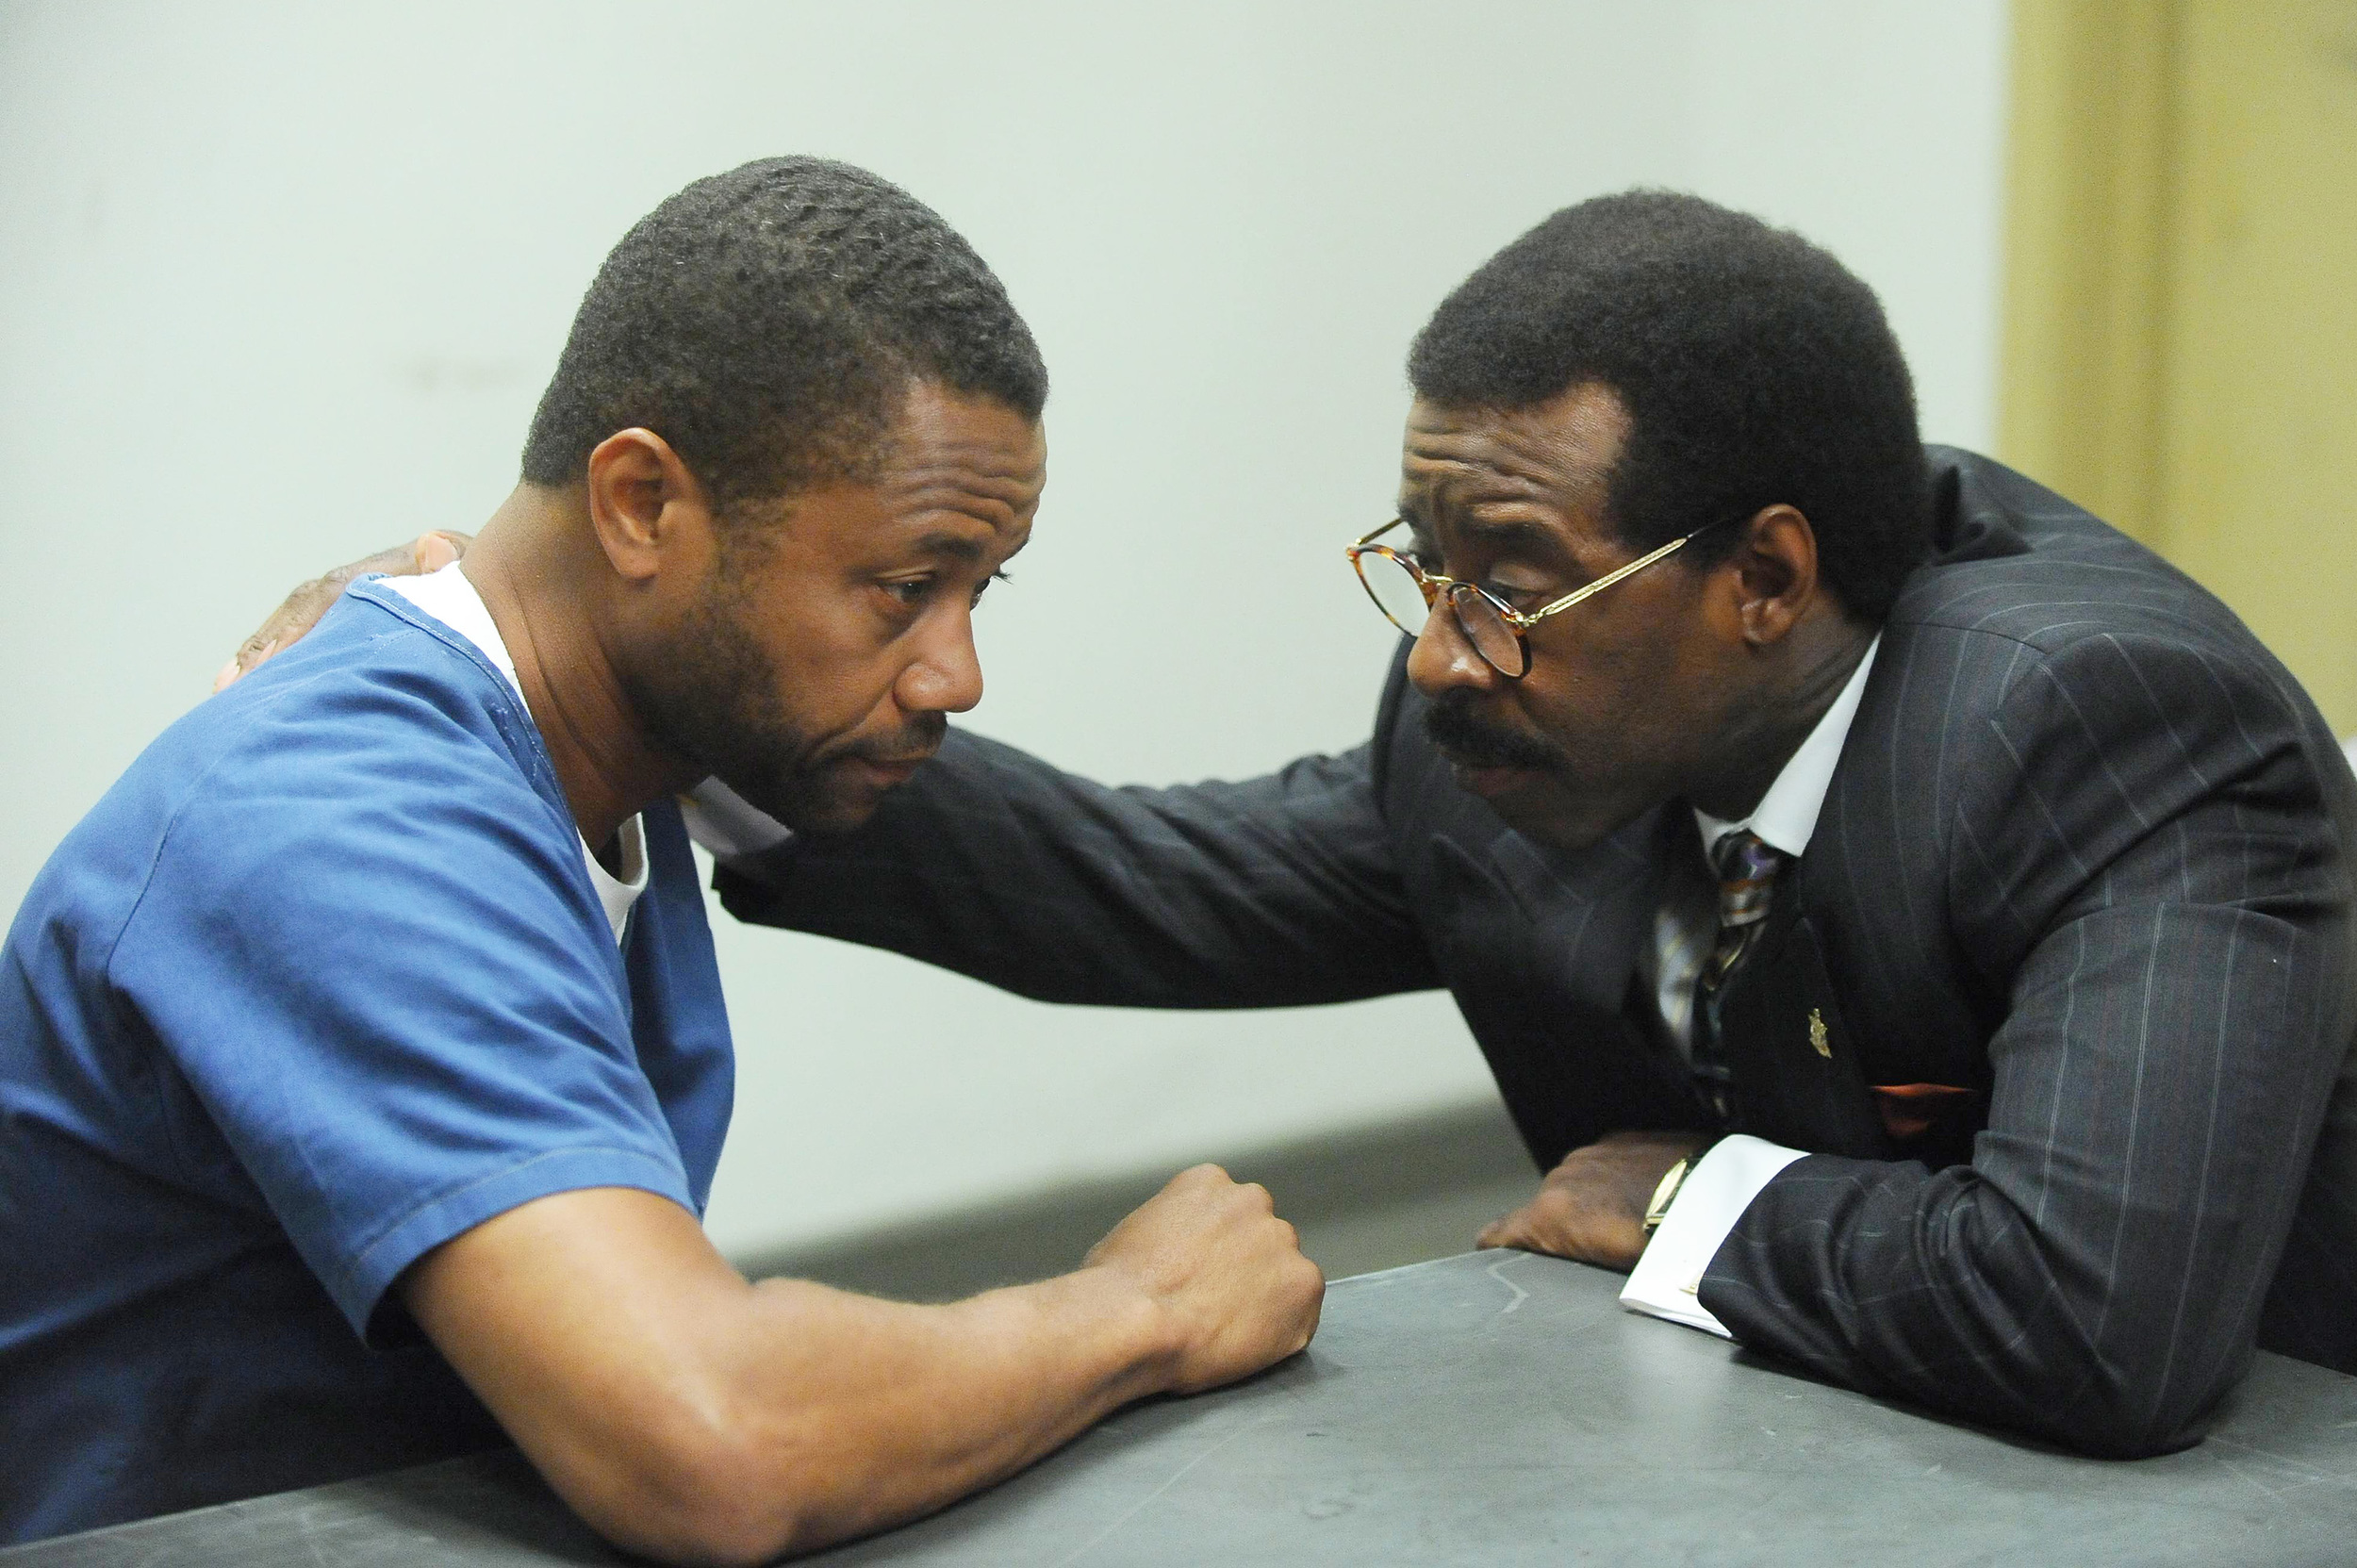 'People vs OJ Simpson' dominates the acting slots